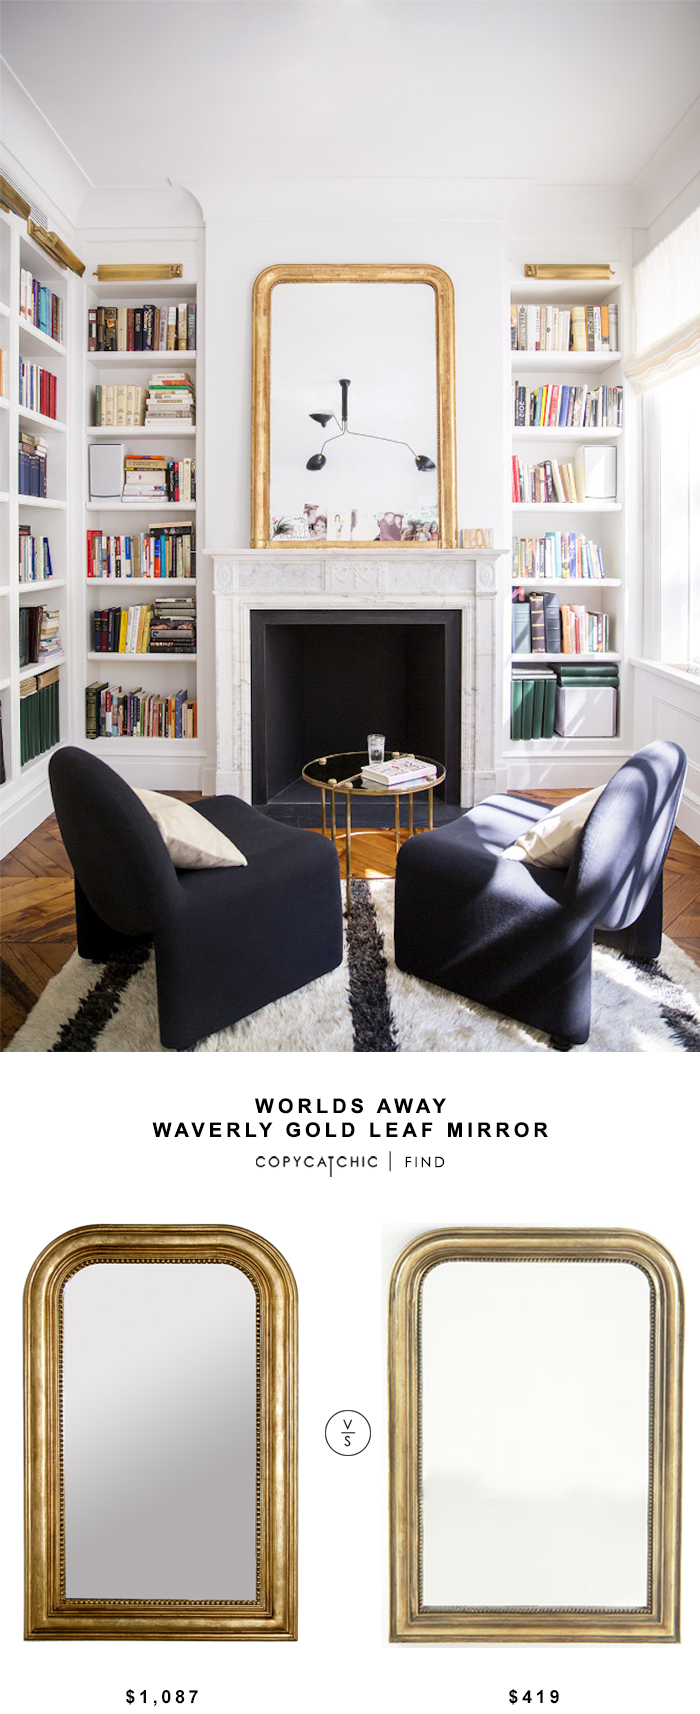 Worlds Away Waverly Gold Leaf Mirror for $1,087 vs Wisteria French Gilt Mirror for $419 @copycatchic look for less budget home decor design luxe for less